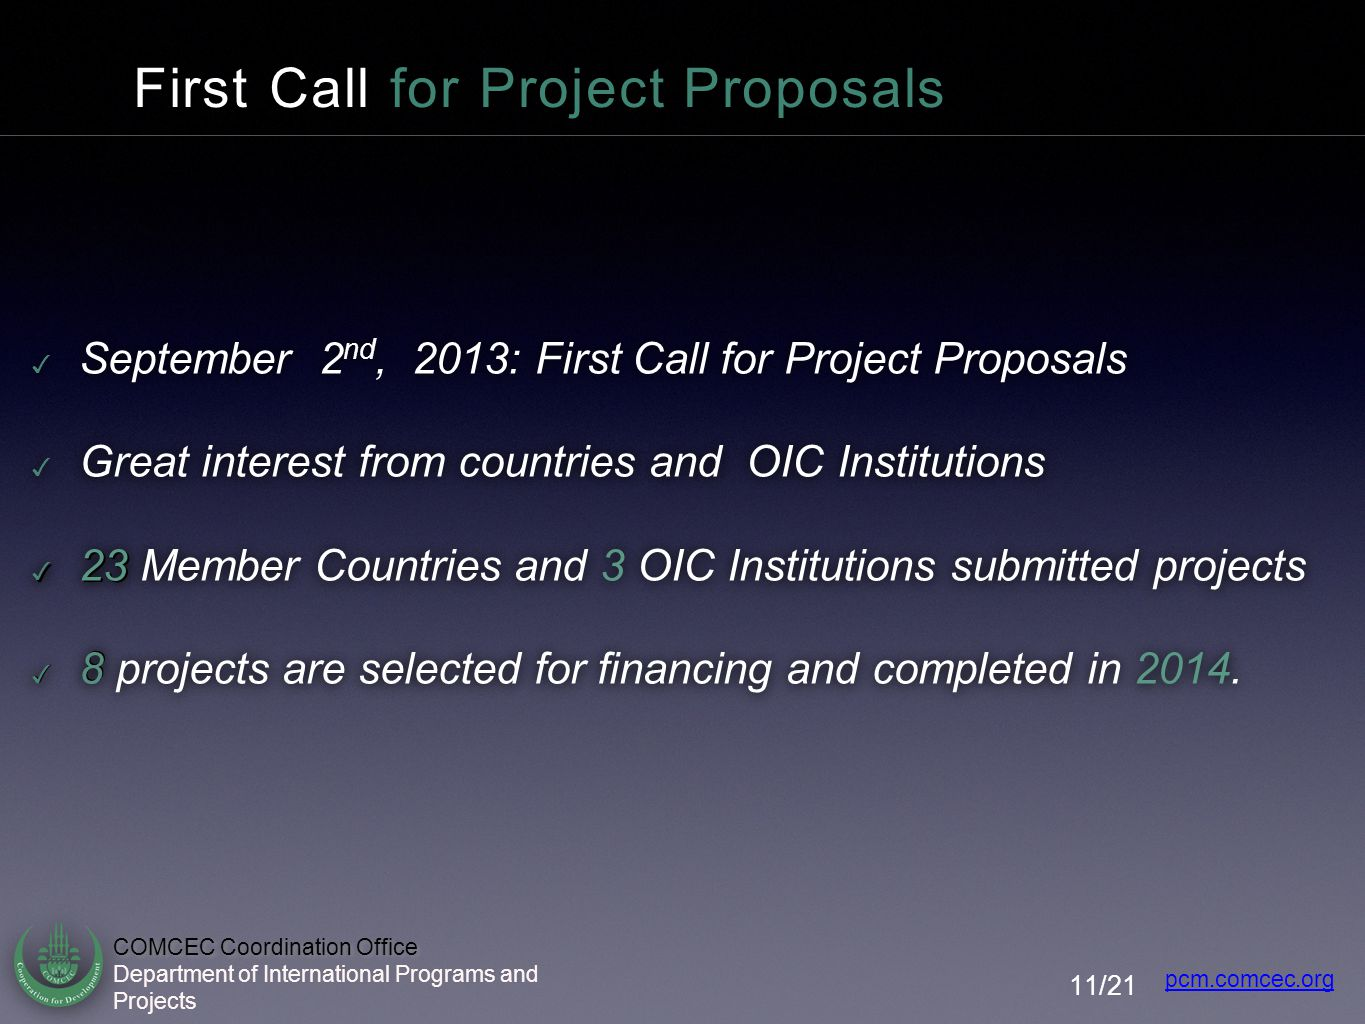 First Call for Project Proposals